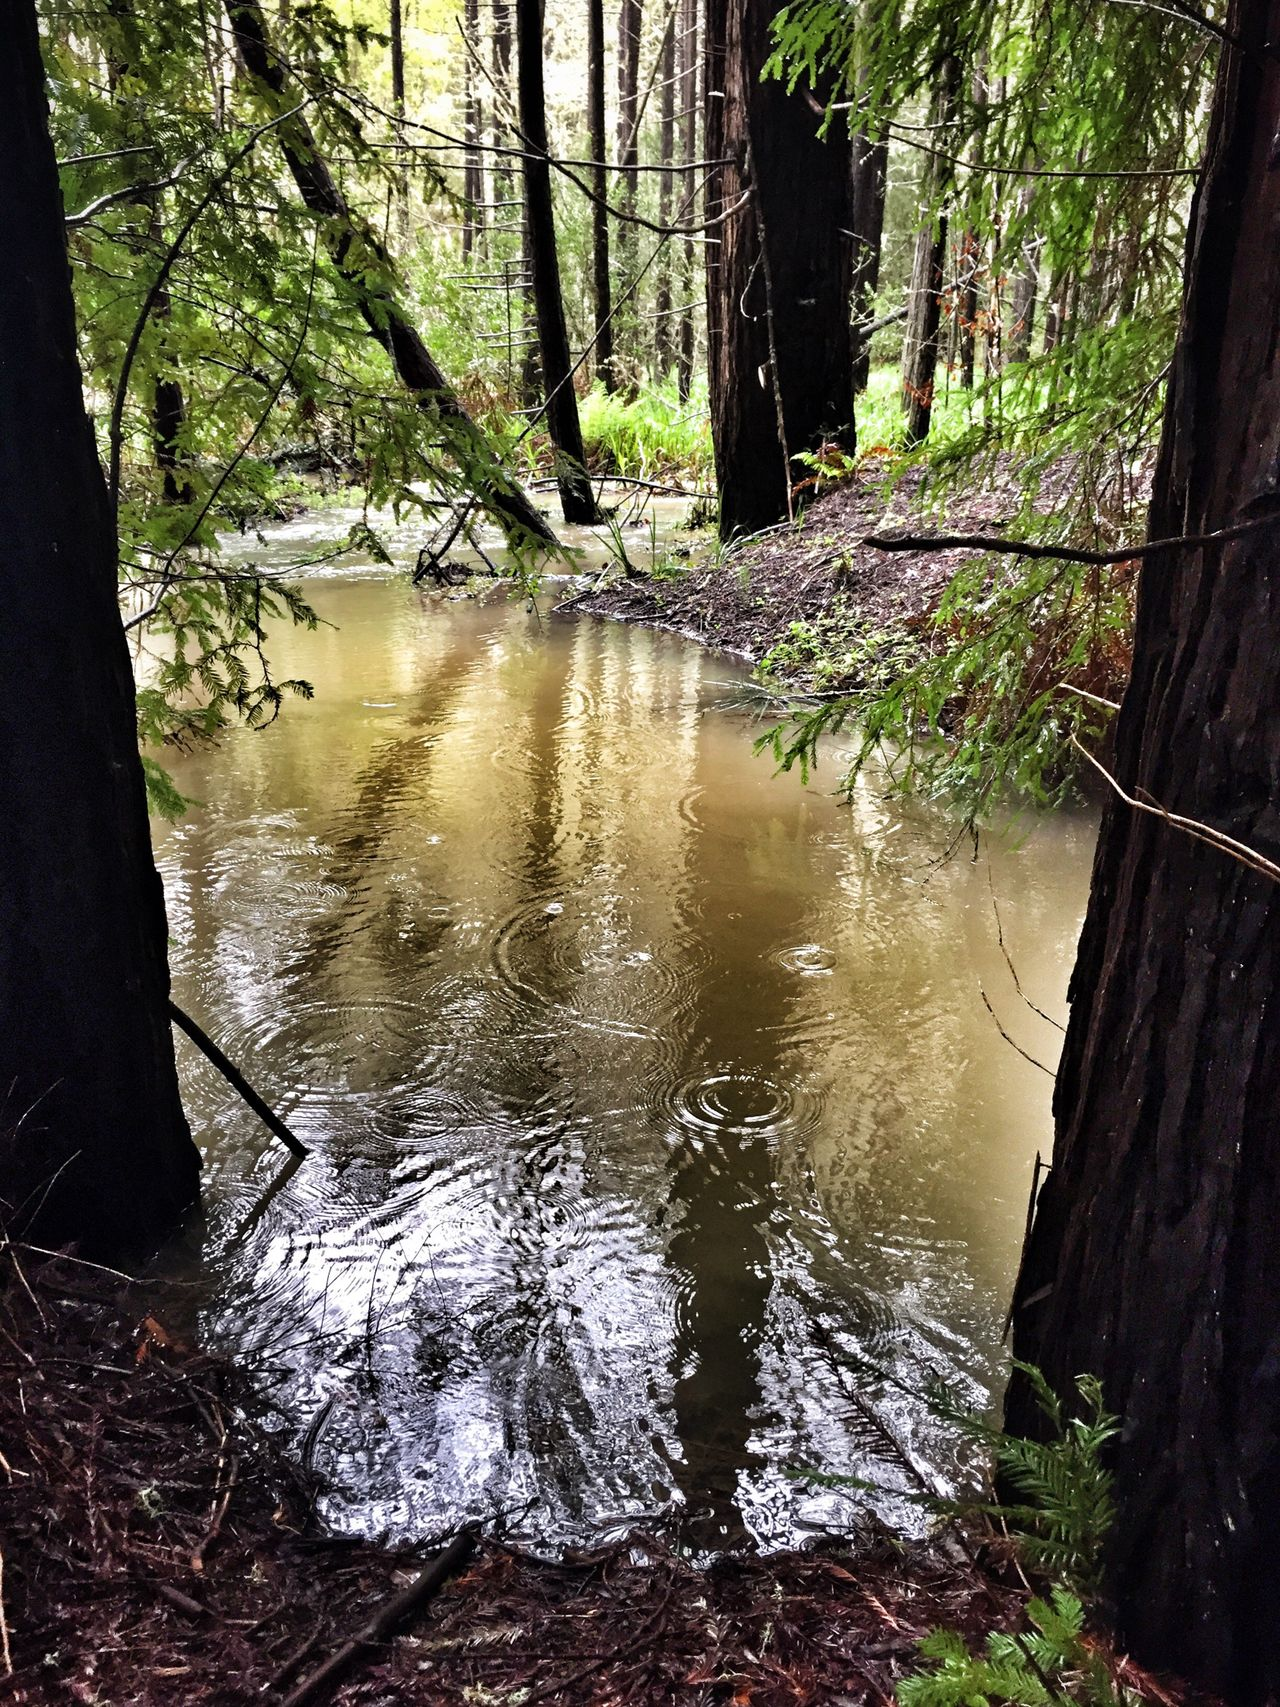 Framed by nature I Stormy Storm Rainy Days Stormy Weather Rainy Day Rain Water Drops Raindrops Puddle Water Reflections Reflection Hike In The Rain Outdoor Photography Framed By Nature Framed By Trees Redwoods ShotOniPhone6